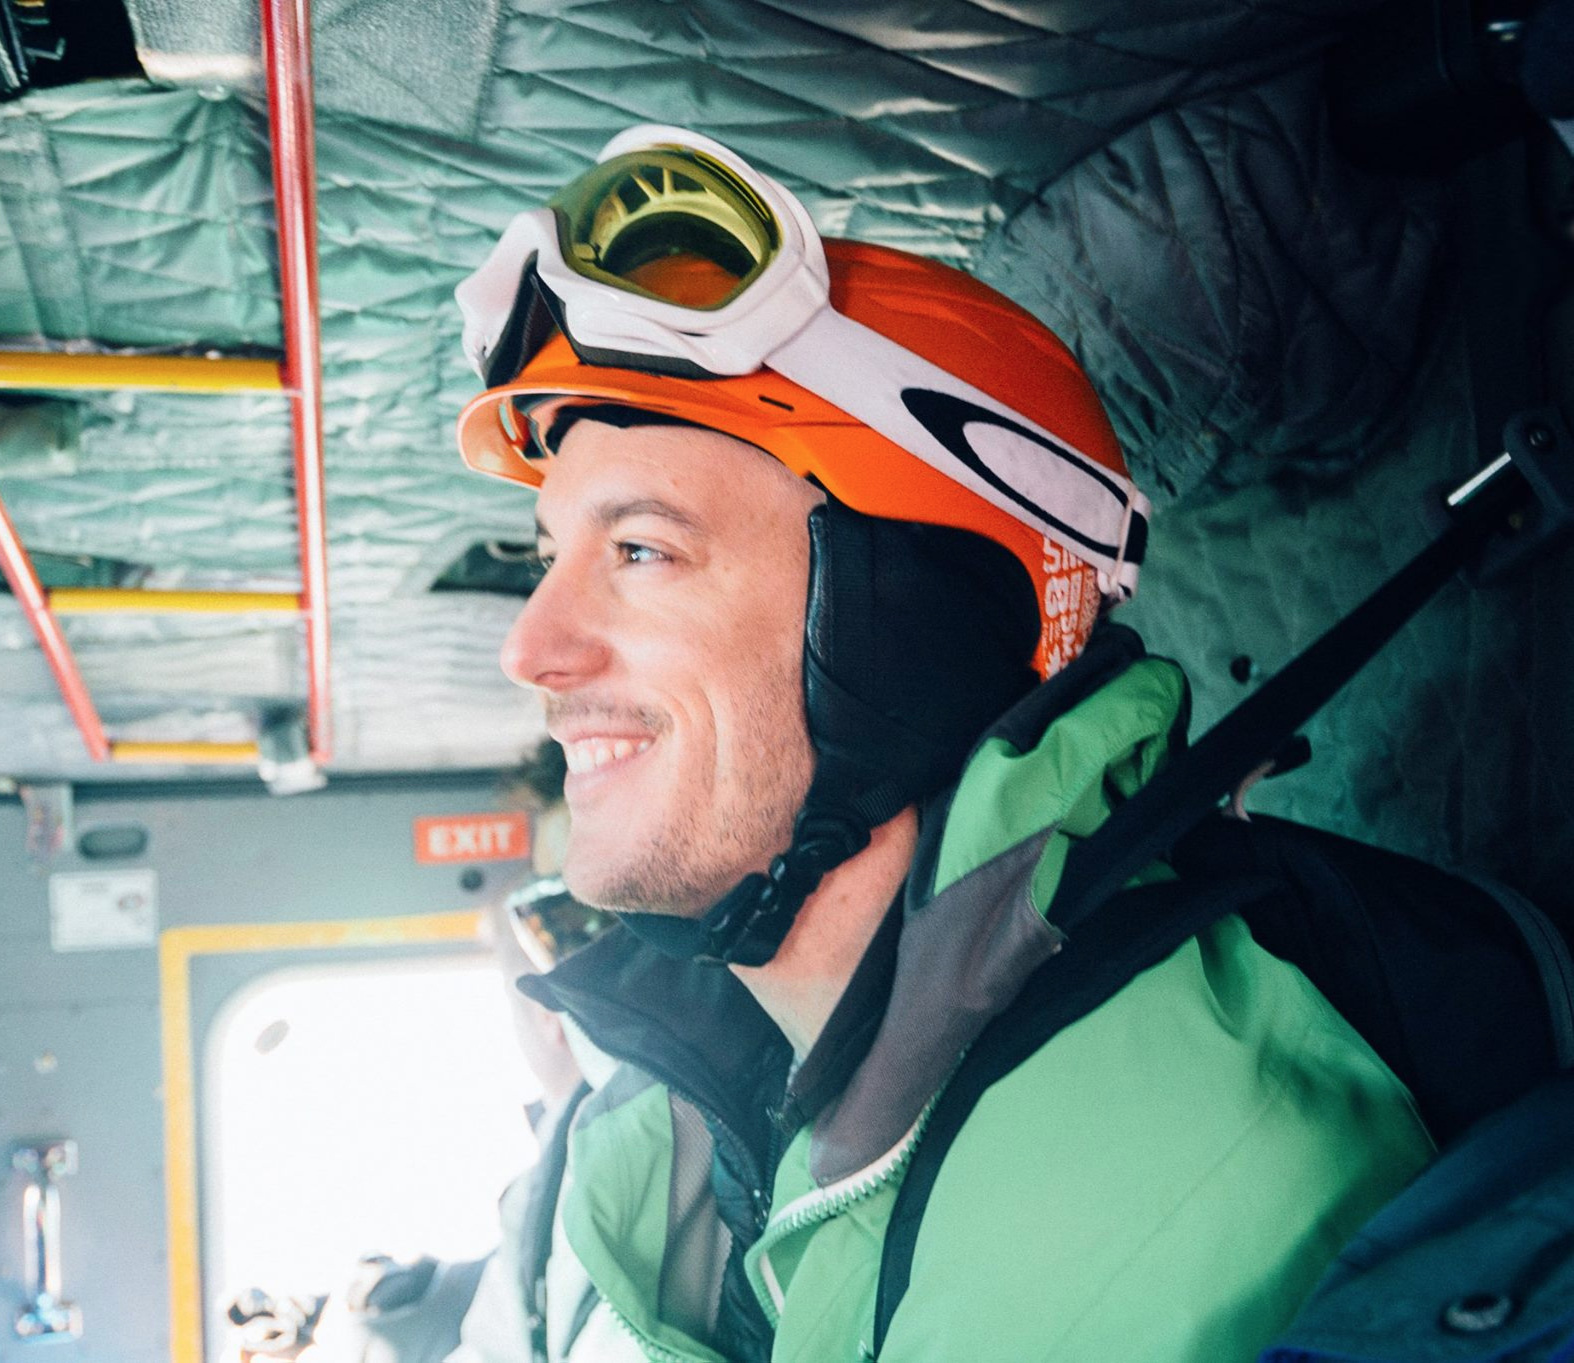 Keith Oberlin - founder / Adventure director / Senior GuideSnowboarder | Cyclist | Whitewater kayaker | Triathlete | Hiker | Backpacker | climberAn awkward kid growing up - not sports or outdoors inclined at all - persevering on family camping and canoeing trips, he eventually landed on running and skiing during his youth. Post college something happened. The outdoors, travel and adventures sports took him around the globe from the Alps, paddling Chilean rivers, cycling the Californian coast and enjoying quiet weekends hiking with his husband and dog near their Vermont home.As Adventure Director, he works with outdoor organizations, athletes and enthusiasts to transform the outdoor industry into a safe, fun and inclusive space for the queer community. He also sits as Associate board member of Athlete Ally – tackling homophobia and transphobia in college, amateur, pro, and Olympic sports.